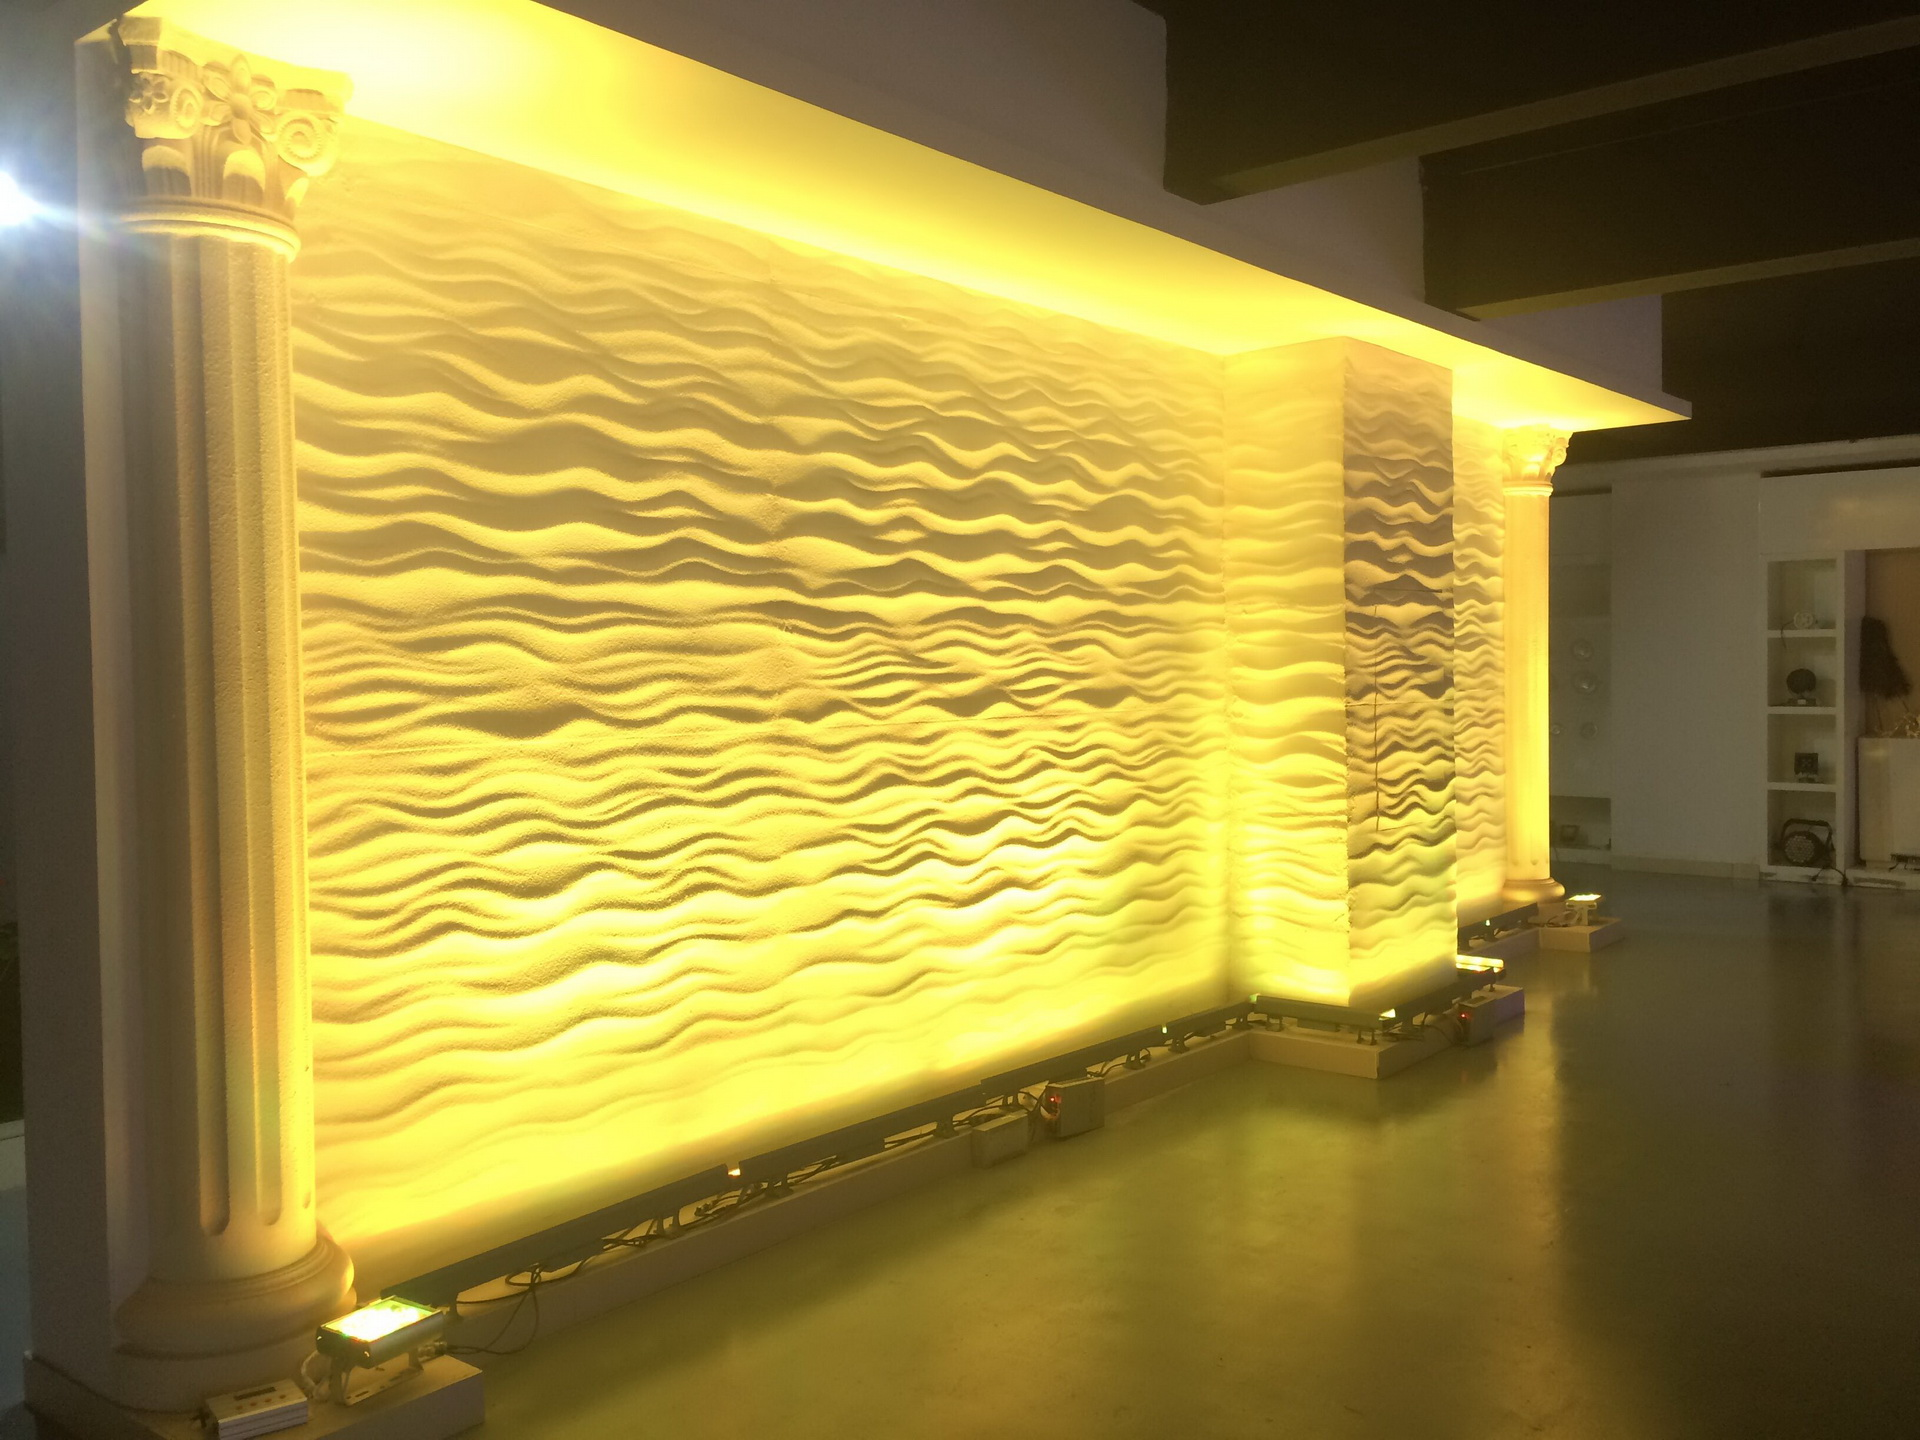 Led Wall Wash Lights Provide A Vibrant Color To Your